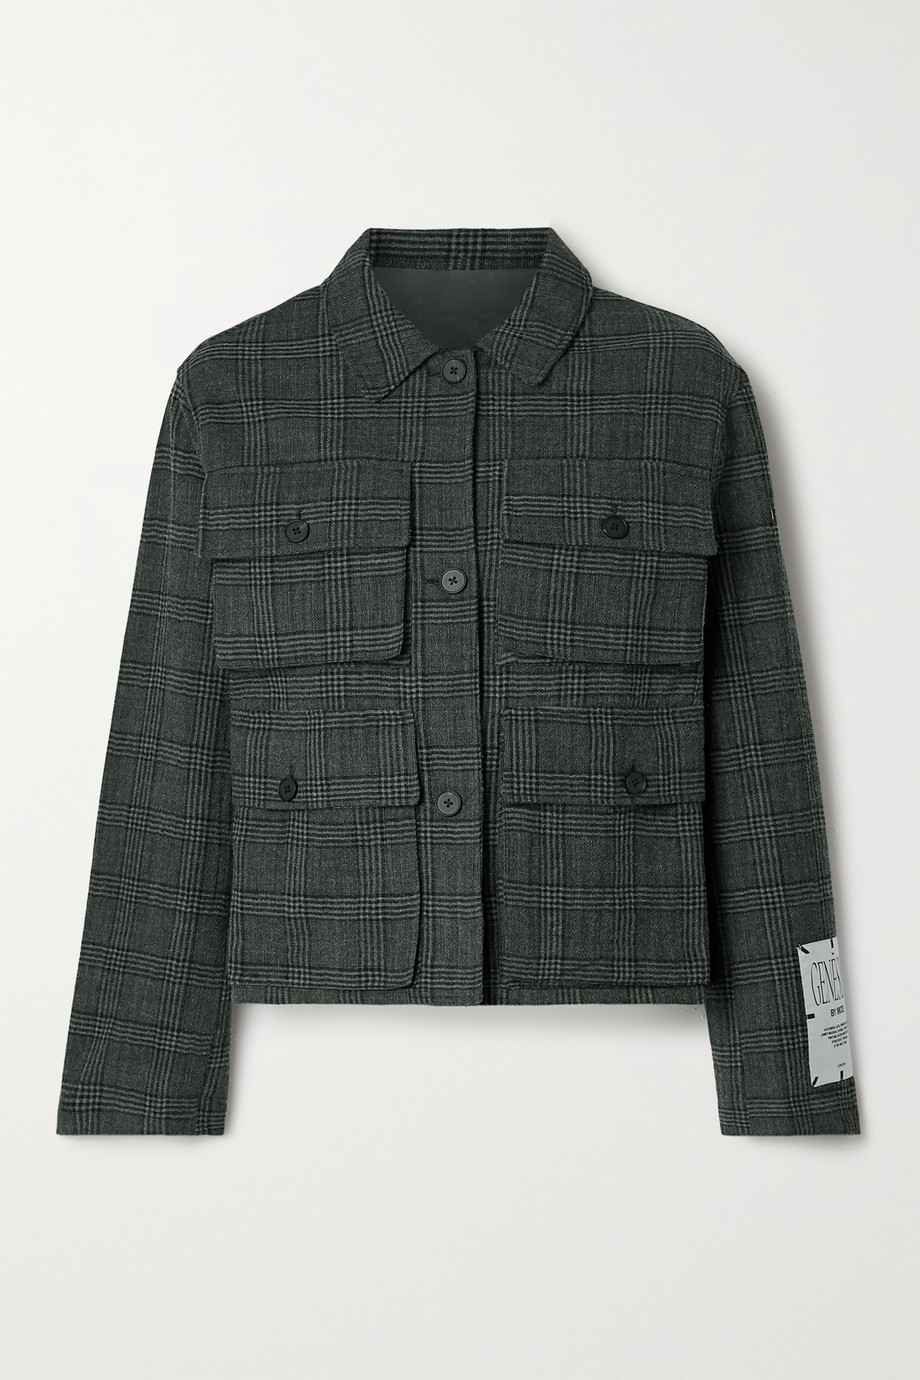 MCQ ALEXANDER MCQUEEN Checked cotton and wool-blend jacket